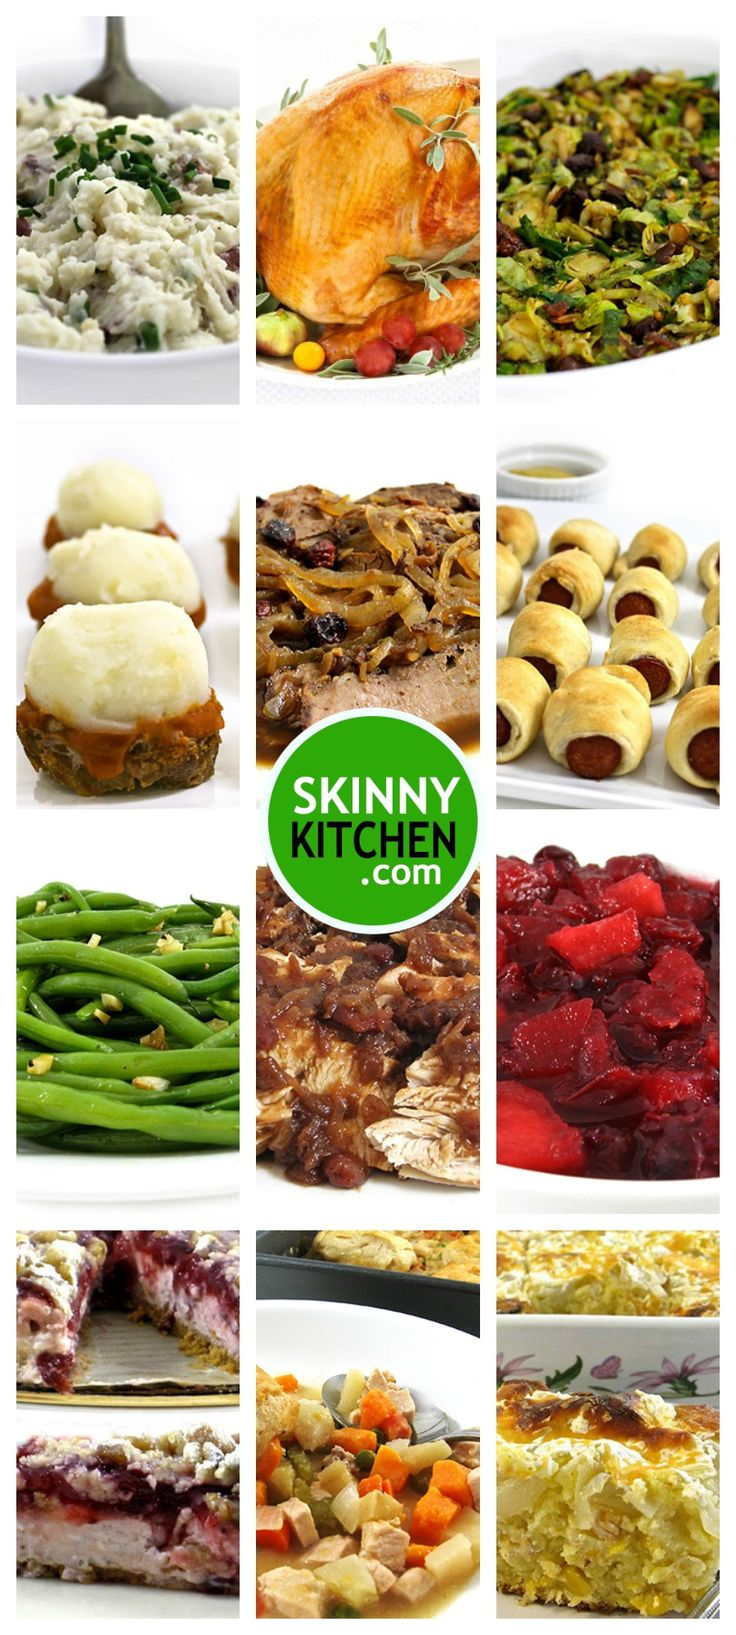 Skinny Kitchen Recipe Roundup for Christmas & Hanukkah. I'm sharing dozens of really delicious, easy recipes. Mix and match to create your own fabulous meal!  http://www.skinnykitchen.com/recipes/skinny-kitchens-holiday-recipes-roundup-2/